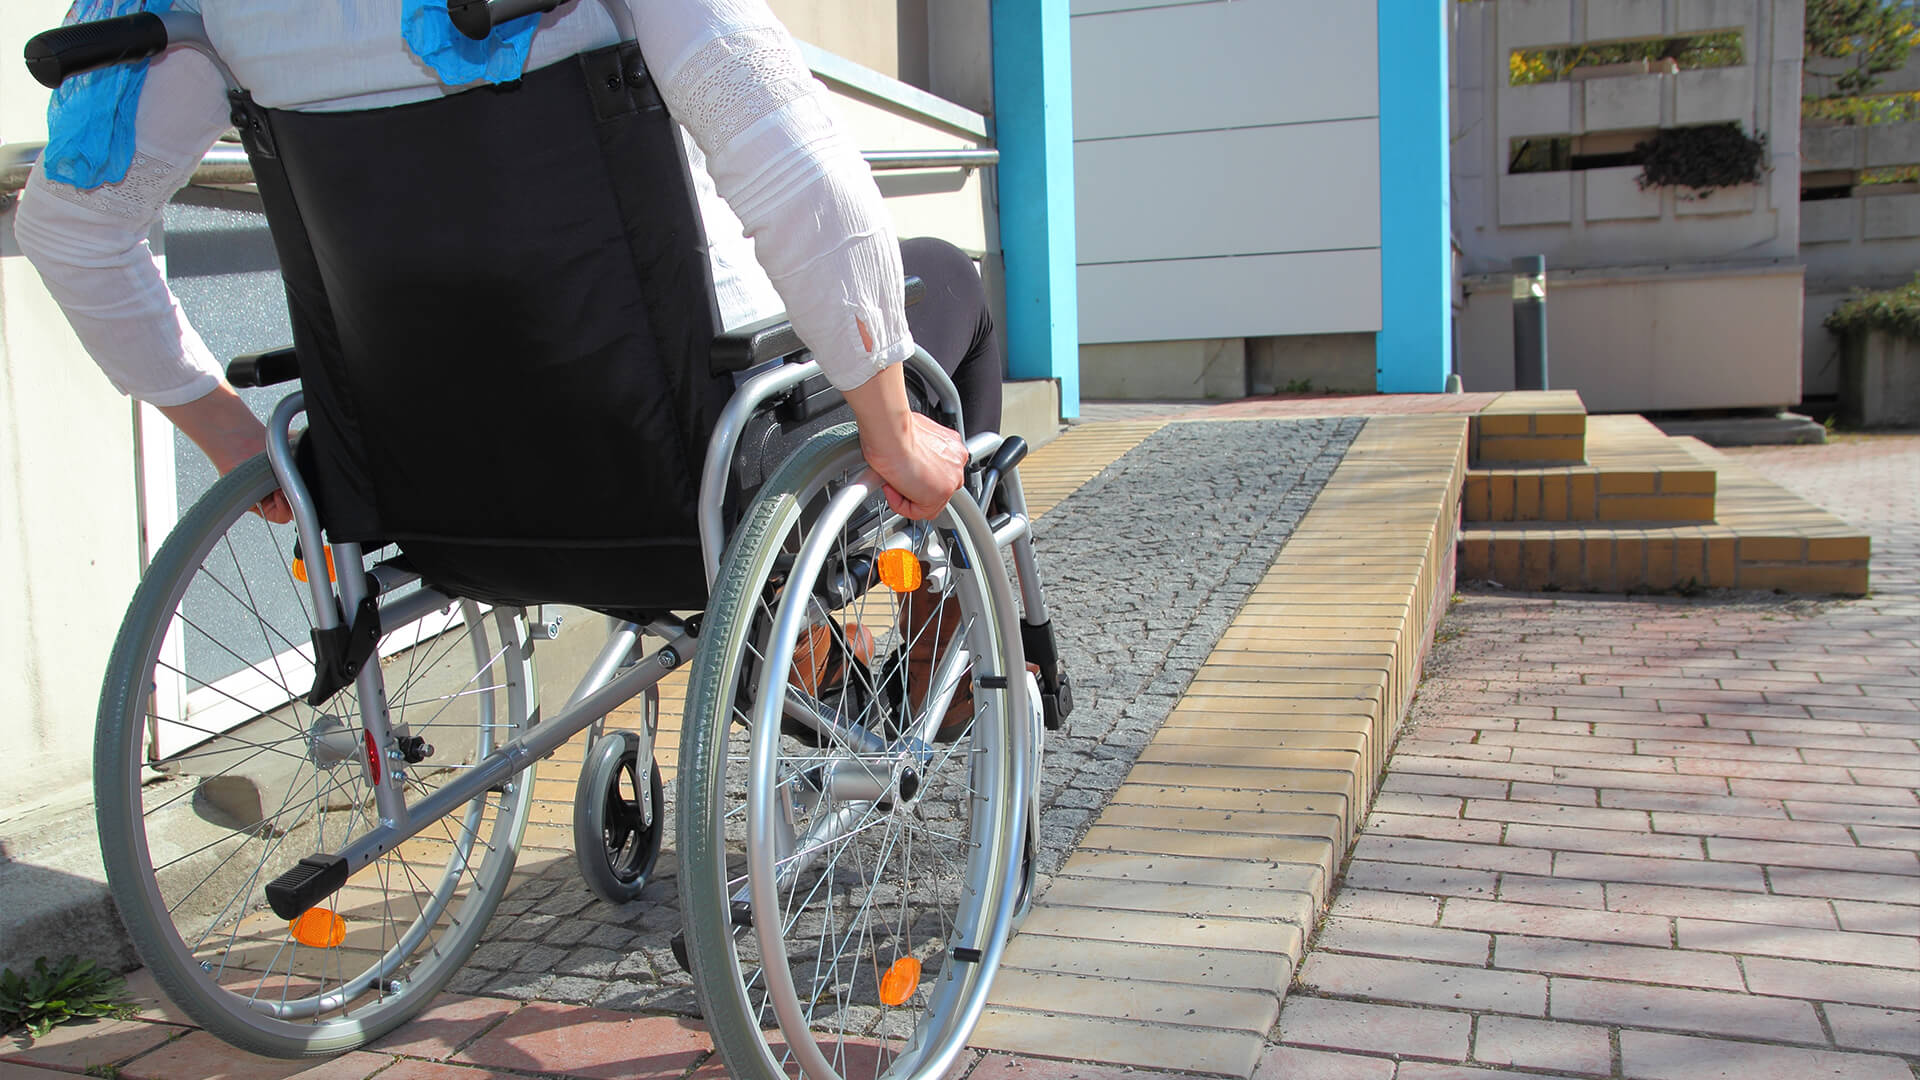 Accessibility in the Future Housing Developments